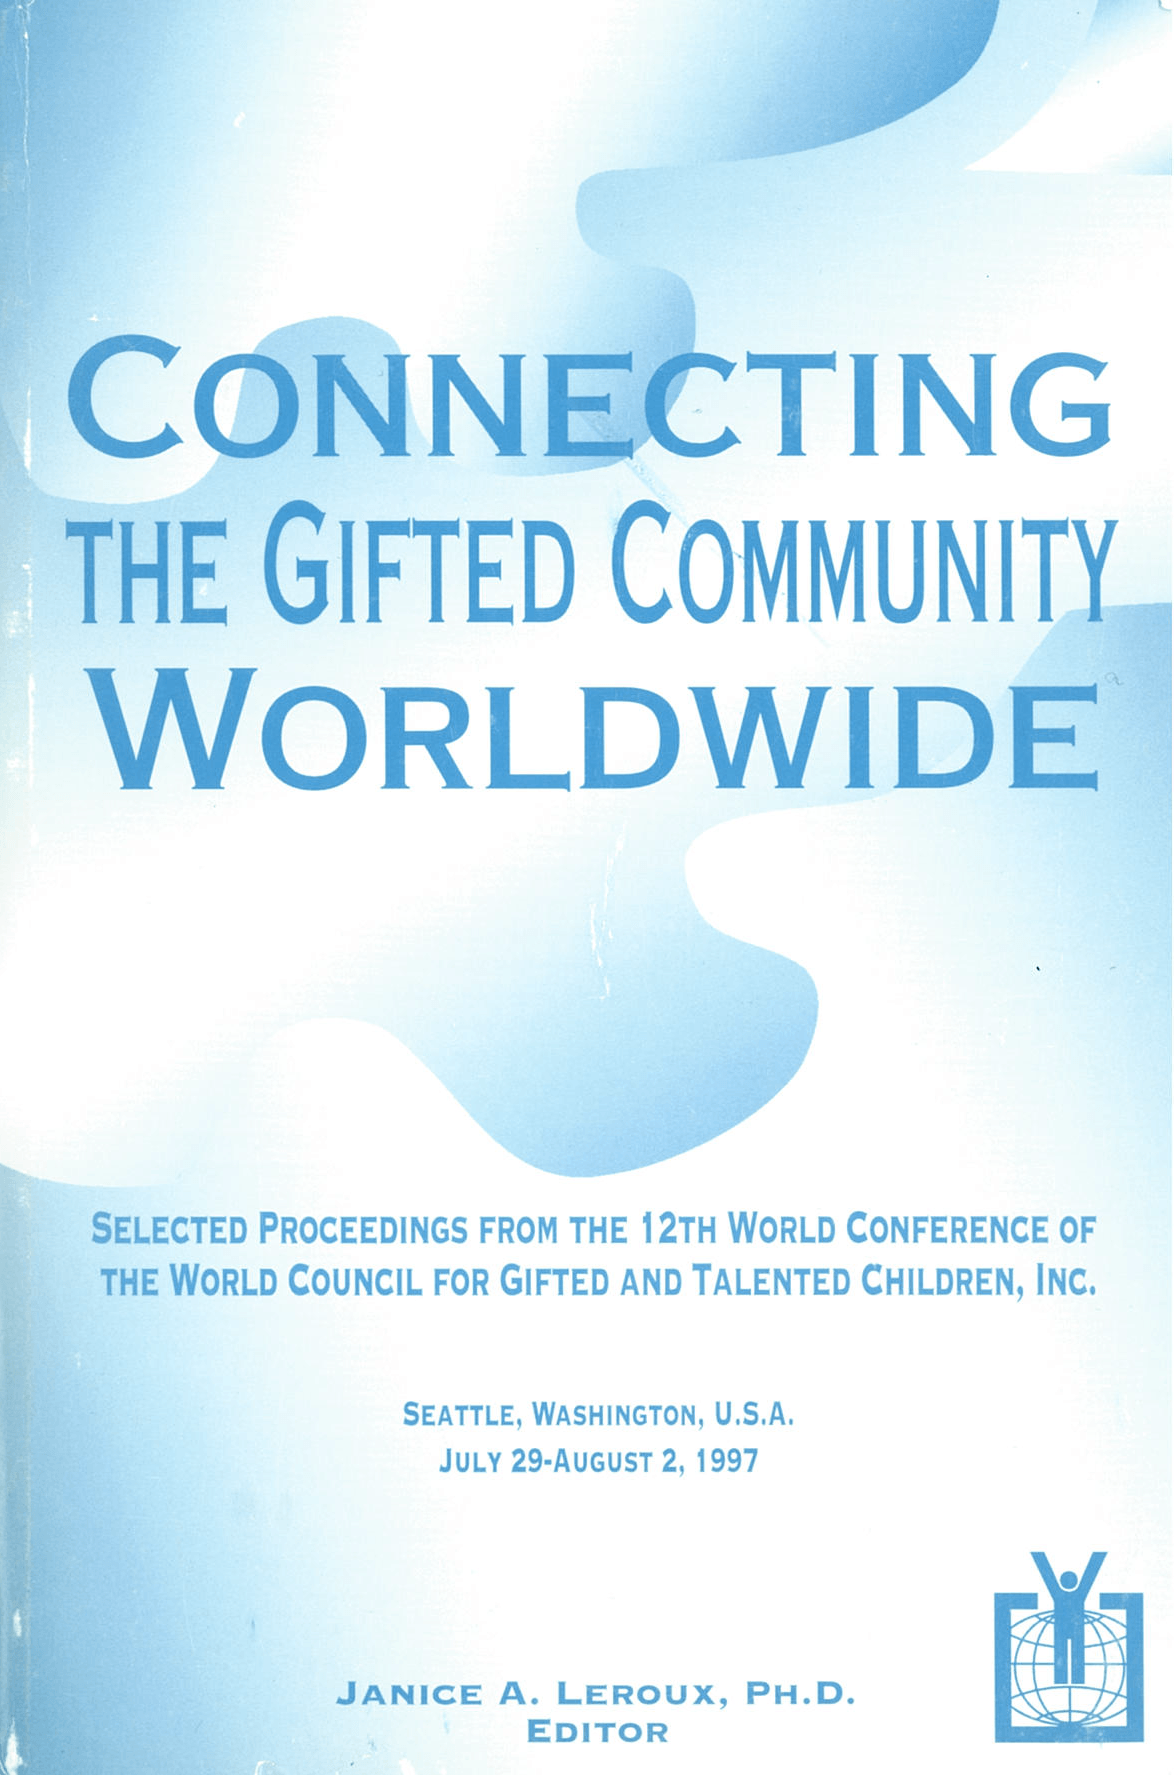 1997 World Conference Proceedings Seattle